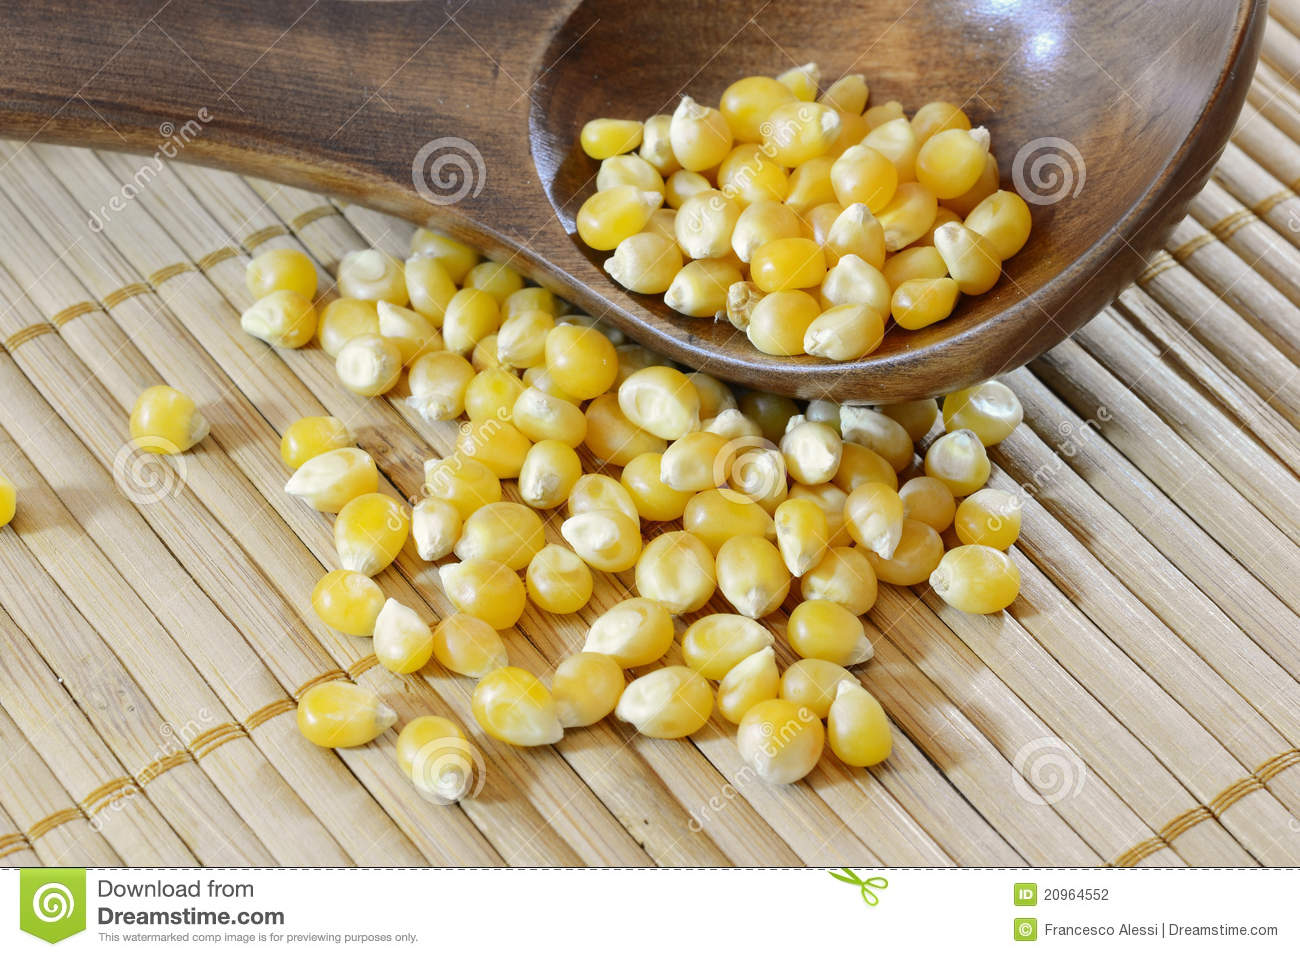 Maize variety clipart #11